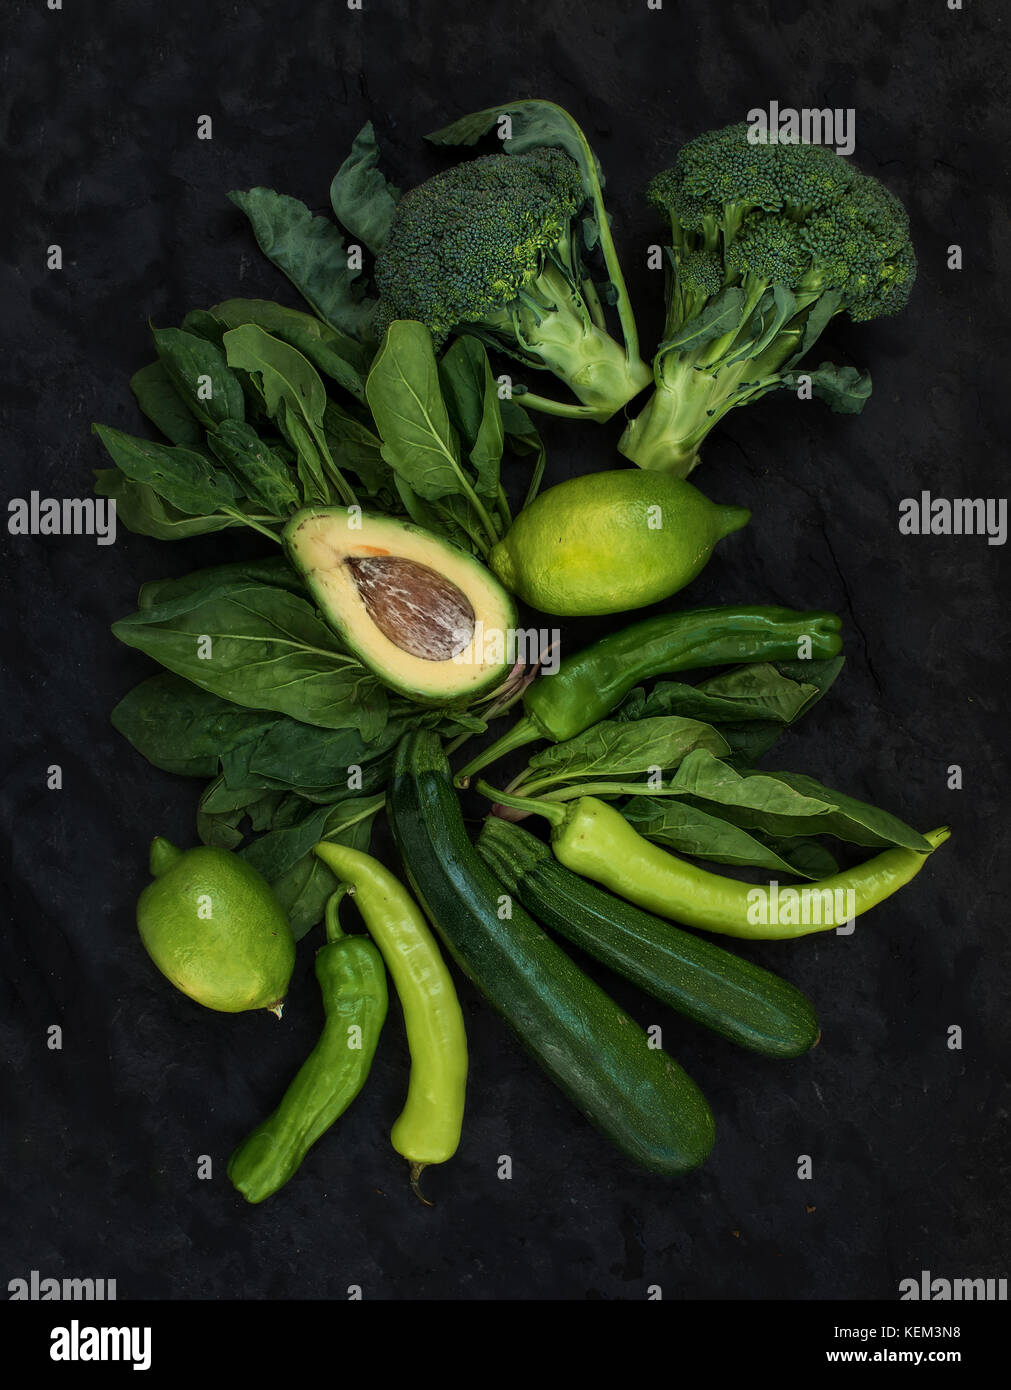 Raw green vegetables set. Broccoli, avocado, pepper, spinach, lime on dark stone background, top view - Stock Image